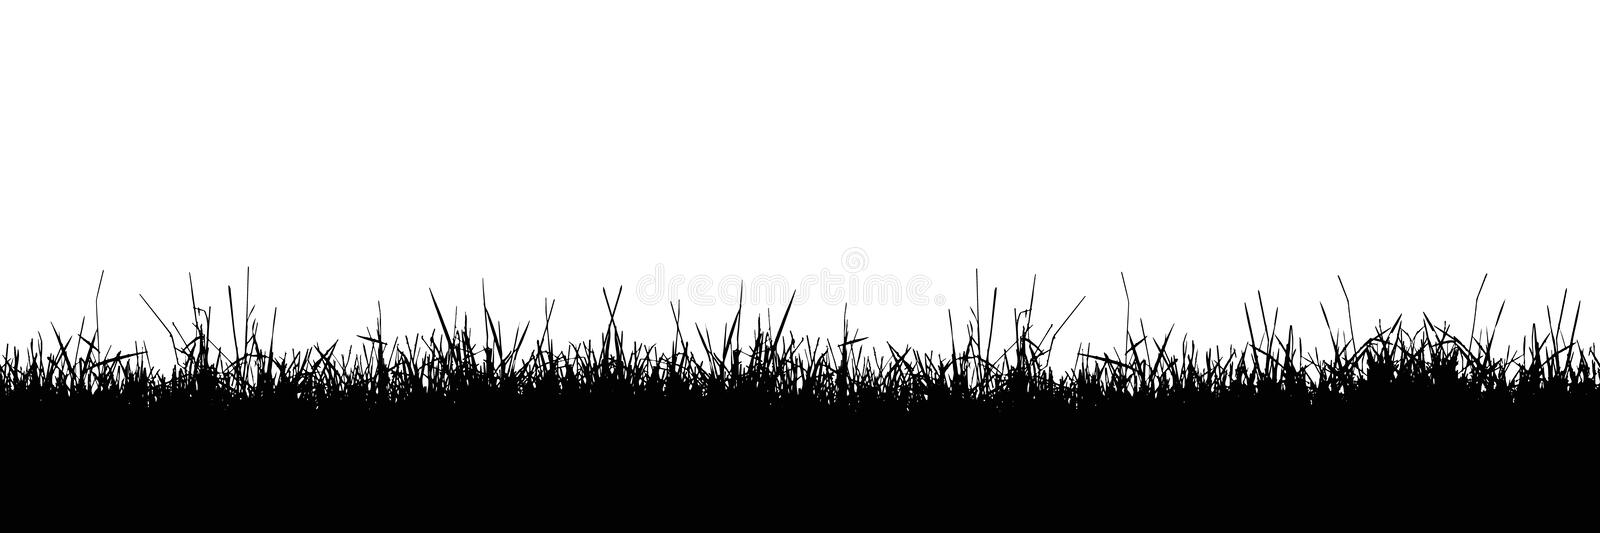 Seamless realistic illustration of a grass stalk or lawn, isolated on a white background, vector. Seamless realistic illustration of a grass stalk or lawn vector illustration